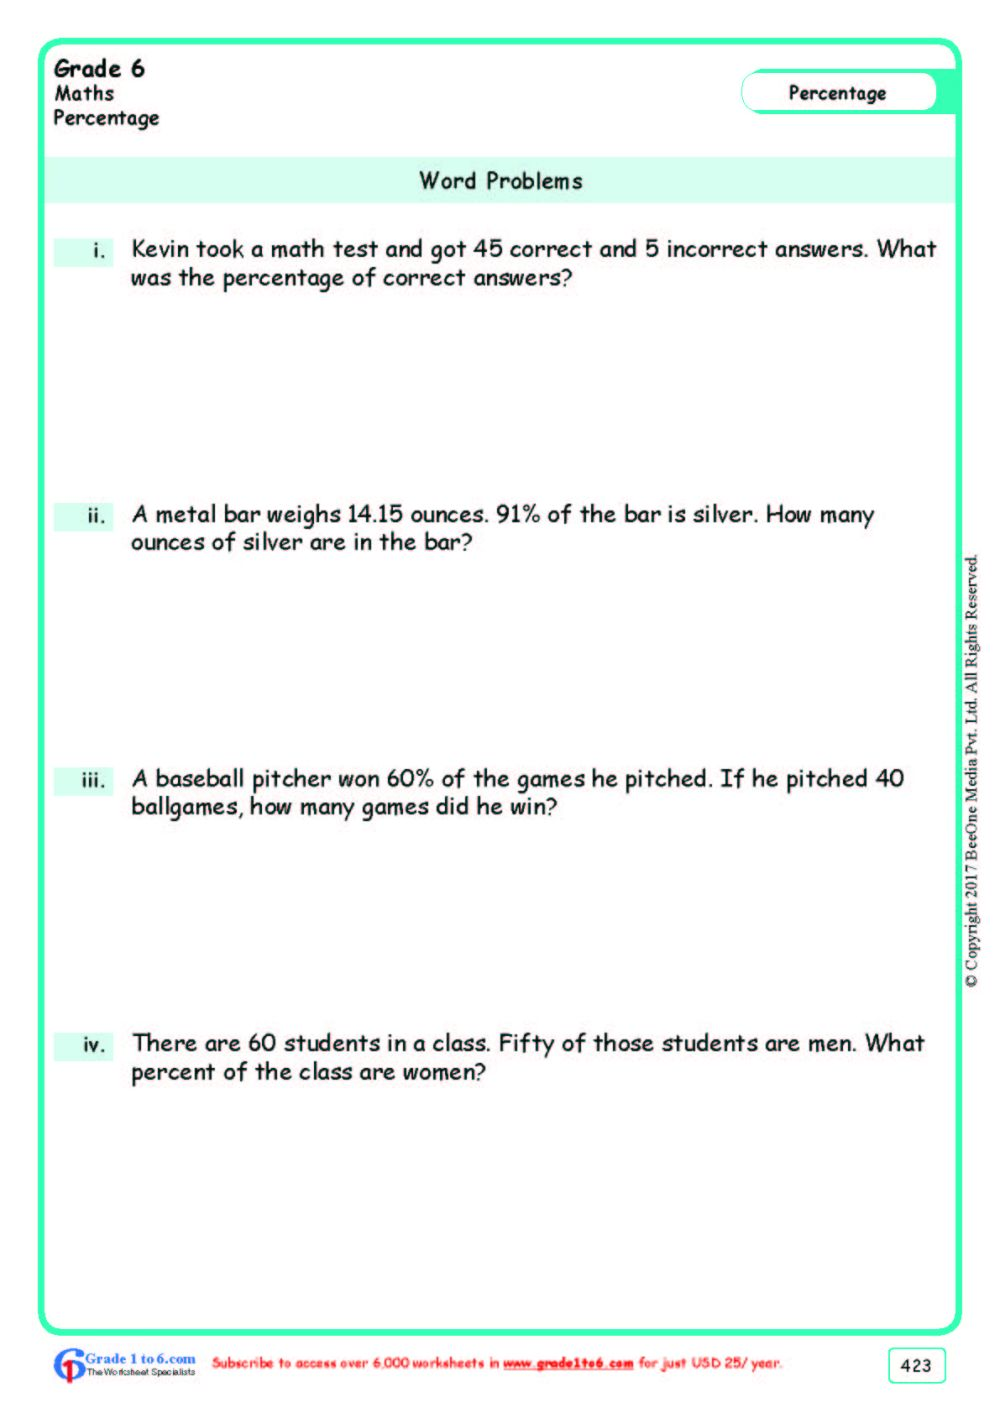 medium resolution of Percentage Word Problems Worksheets www.grade1to6.com